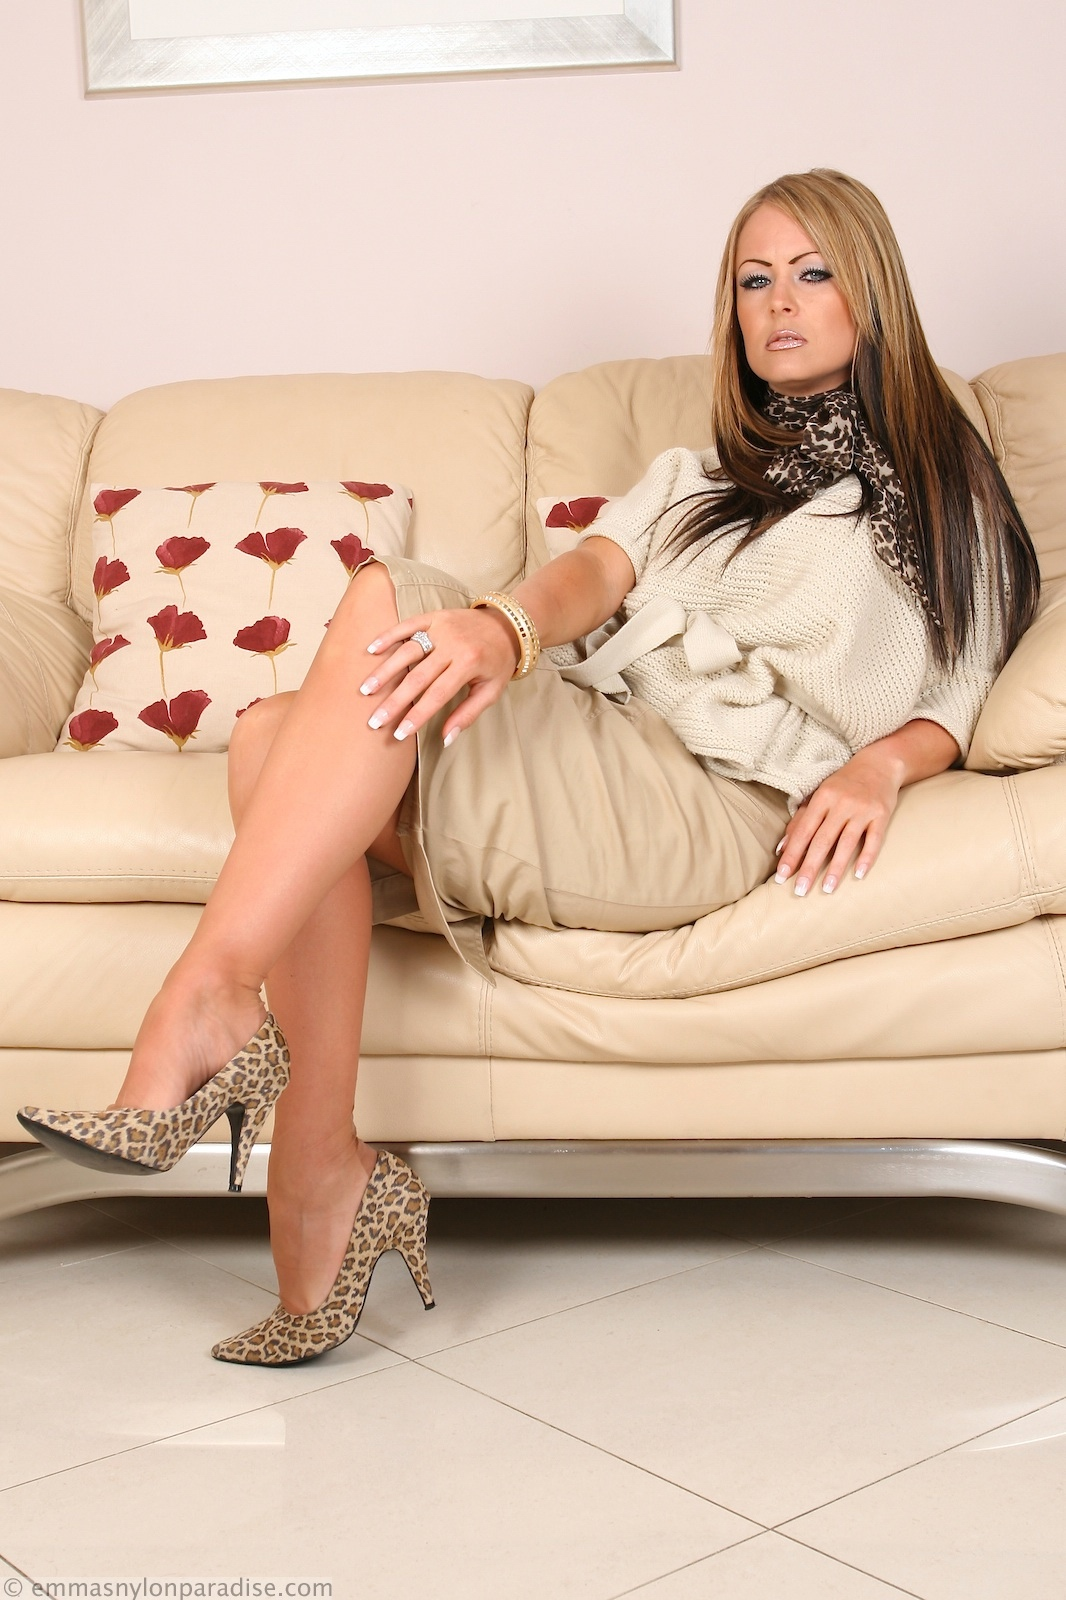 Panty hose and high heels